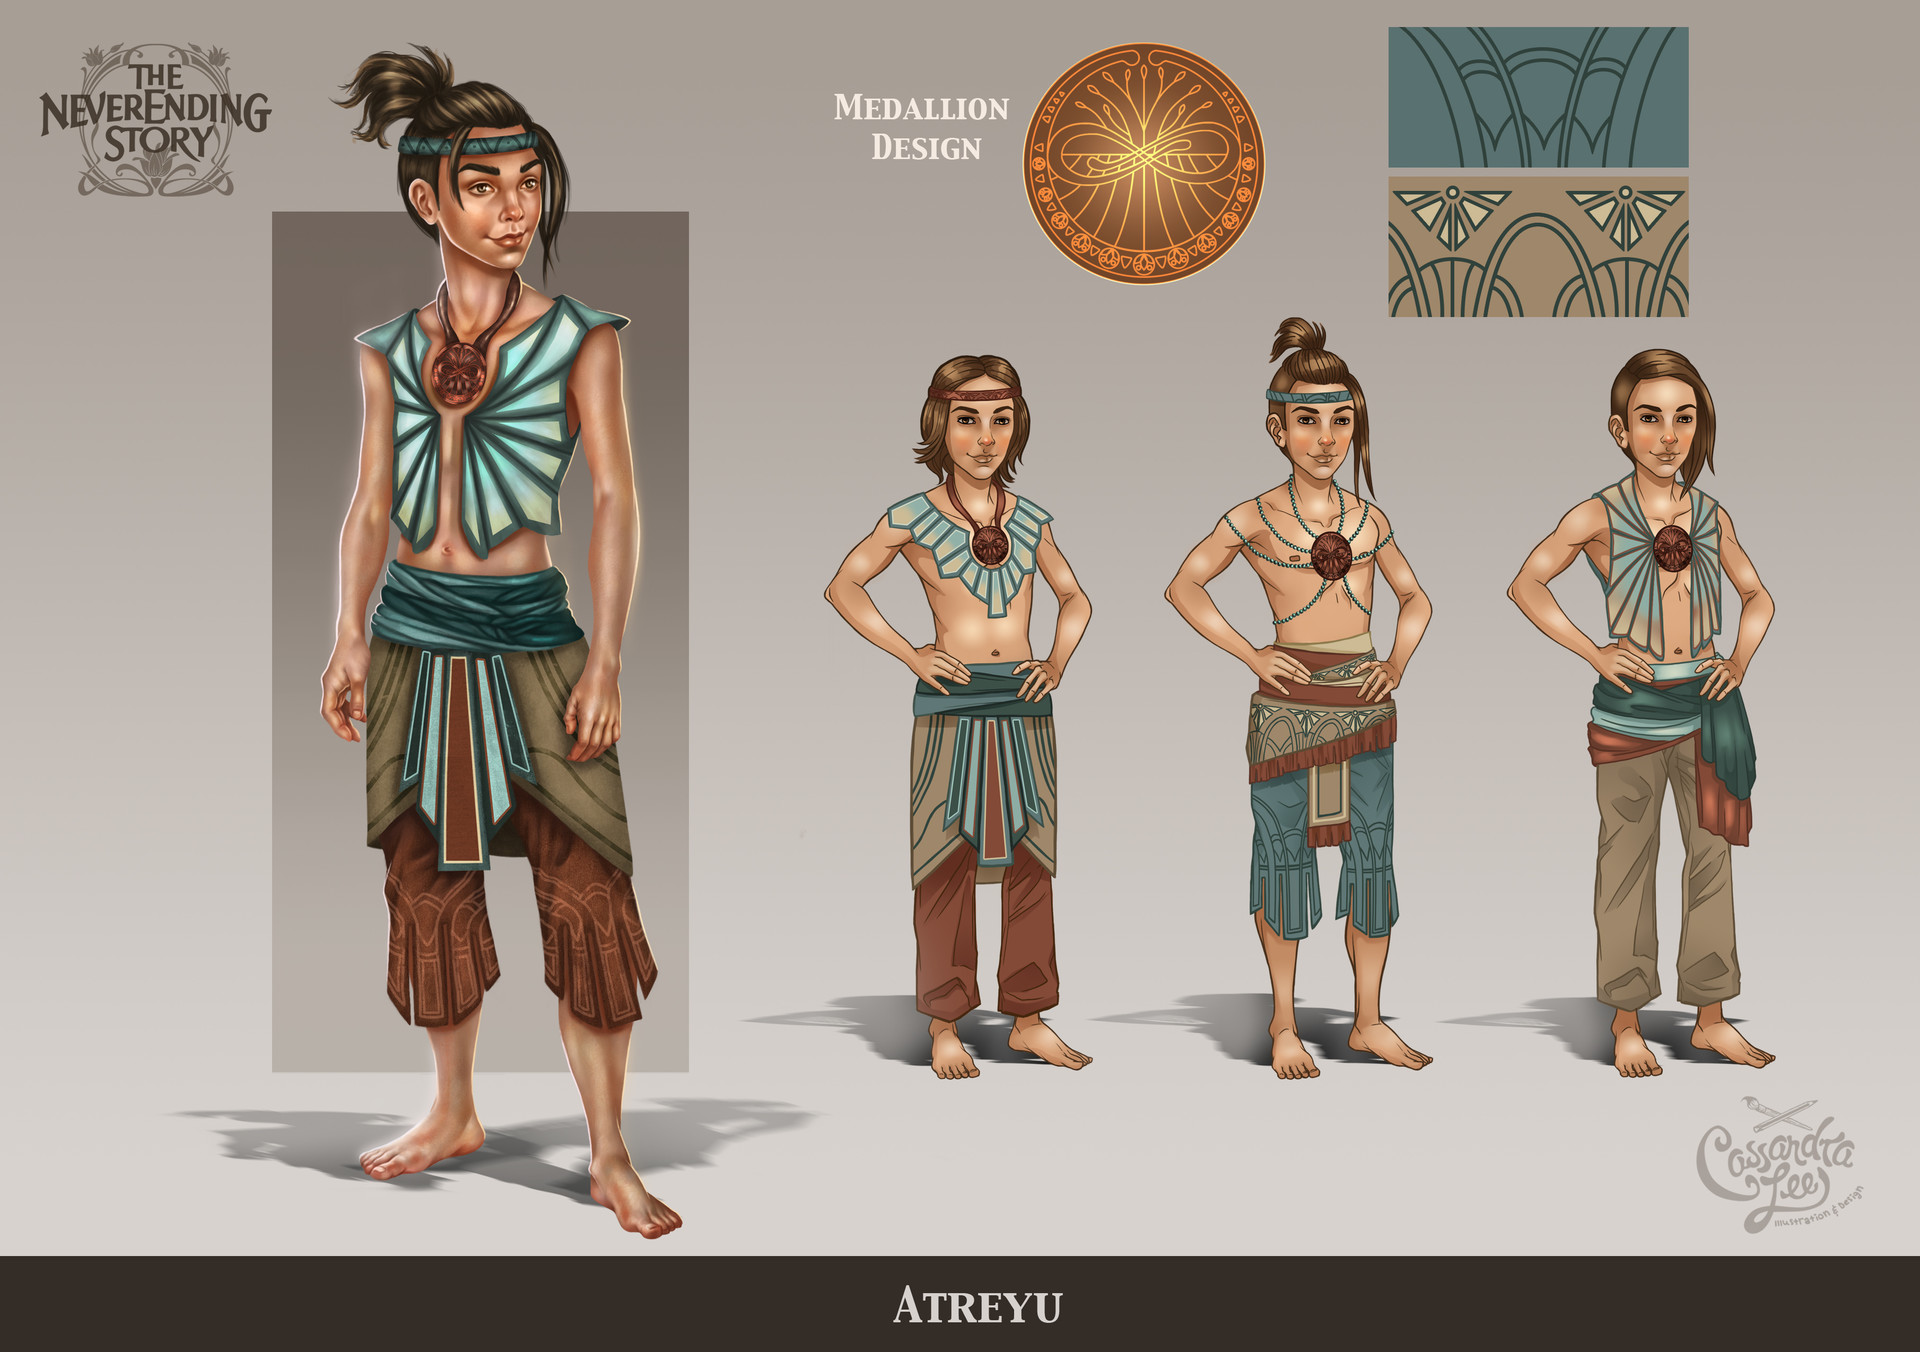 The redesign of Atreyu from The Never Ending Story